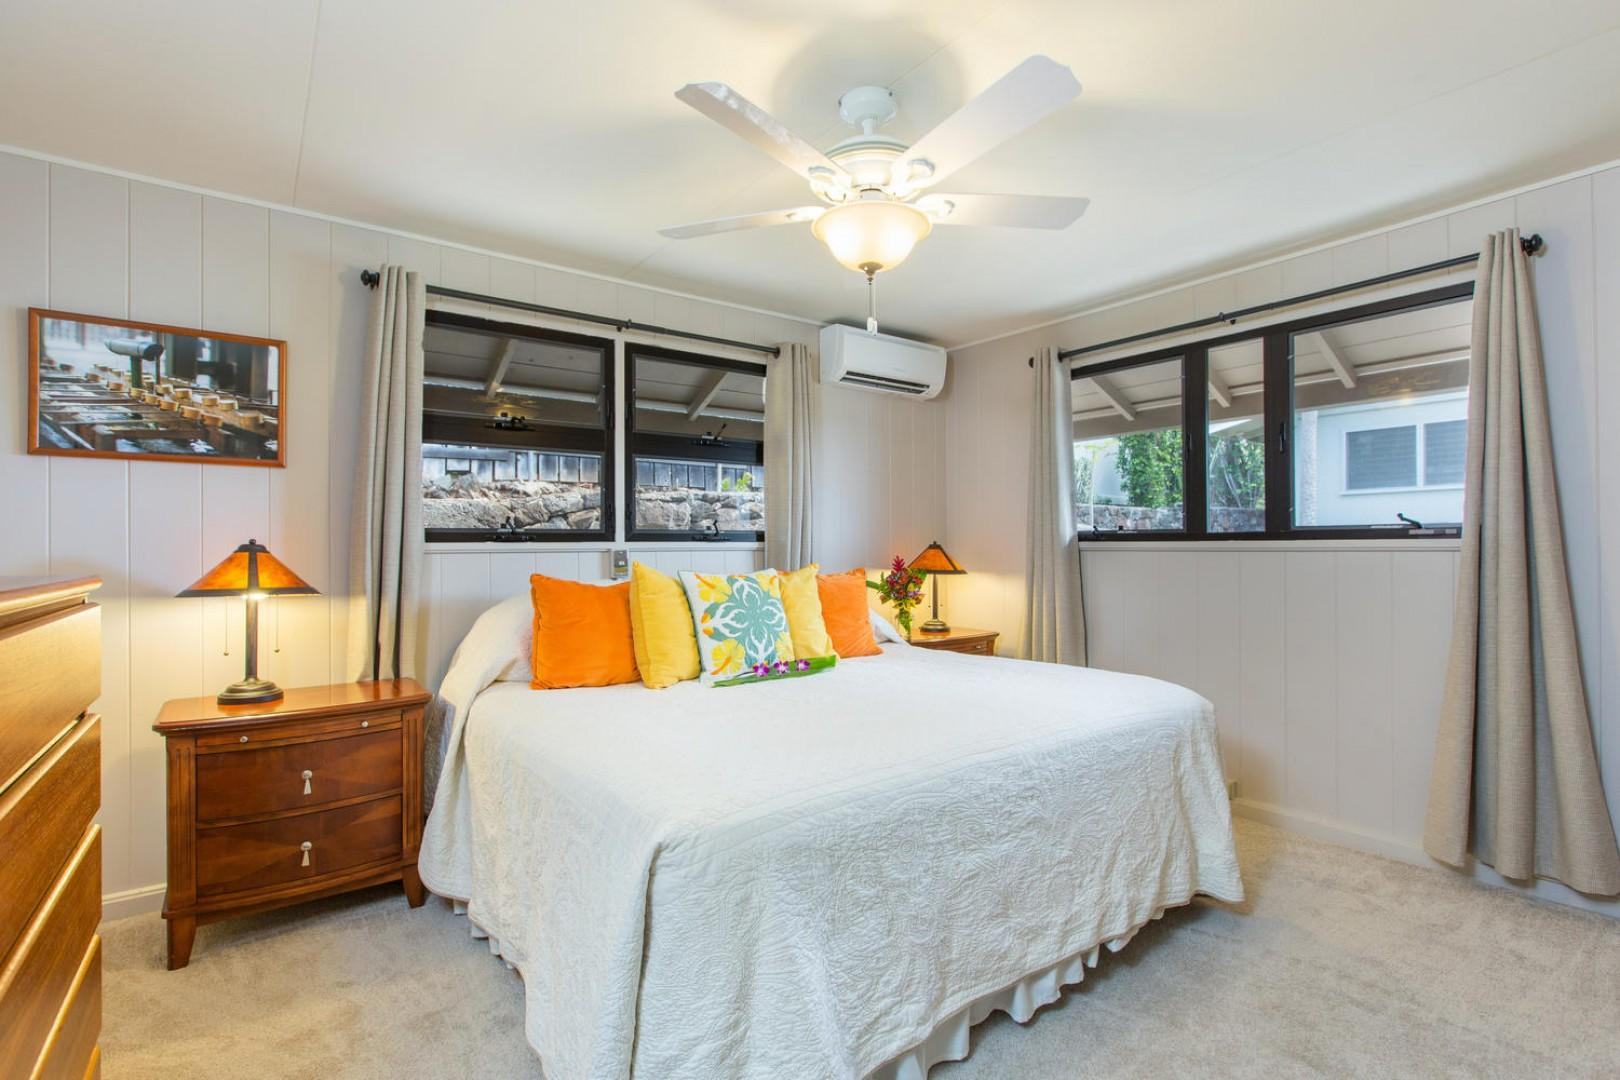 Master bedroom with California king and split air conditioning for warm summer days.